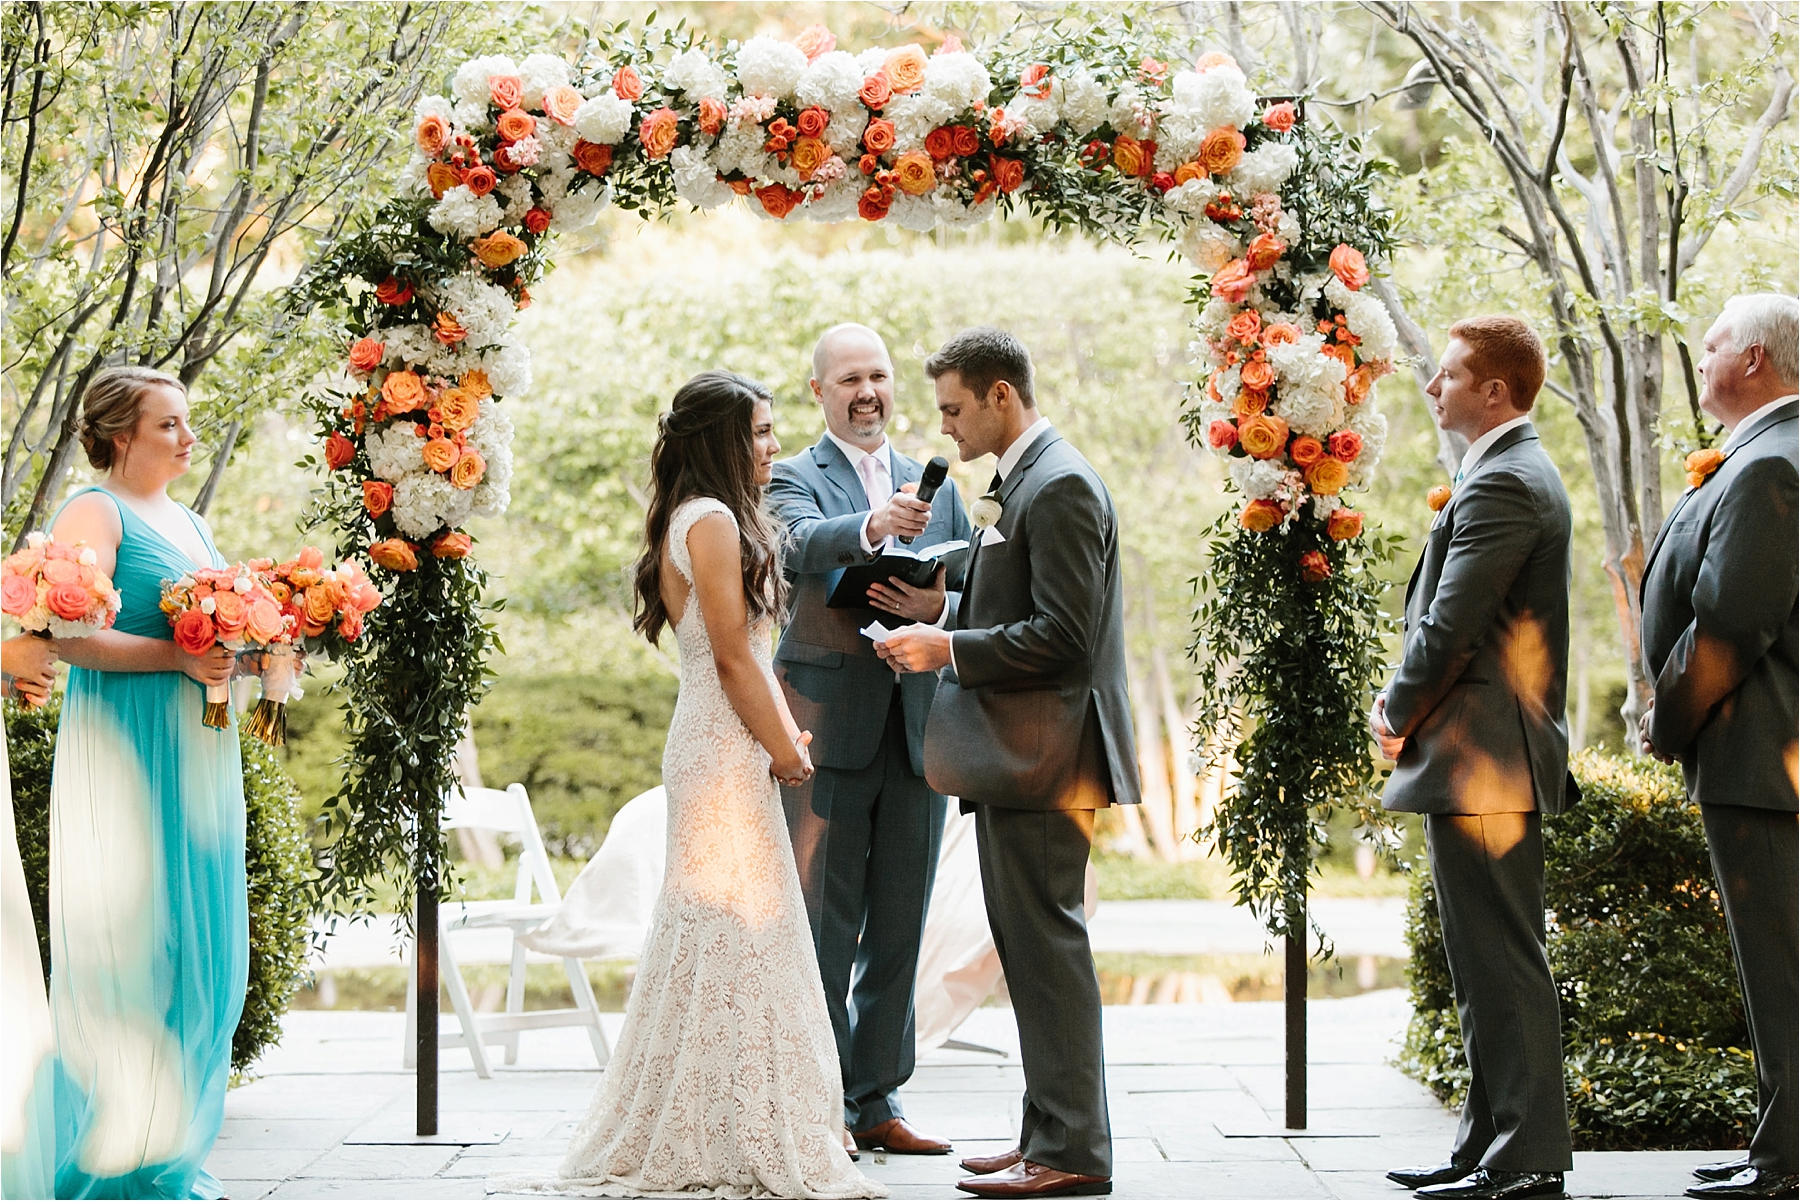 Devyn + Caden __ a Dallas Arboretum Garden Style Wedding by North Texas Wedding Photographer Rachel Meagan Photography __ 096